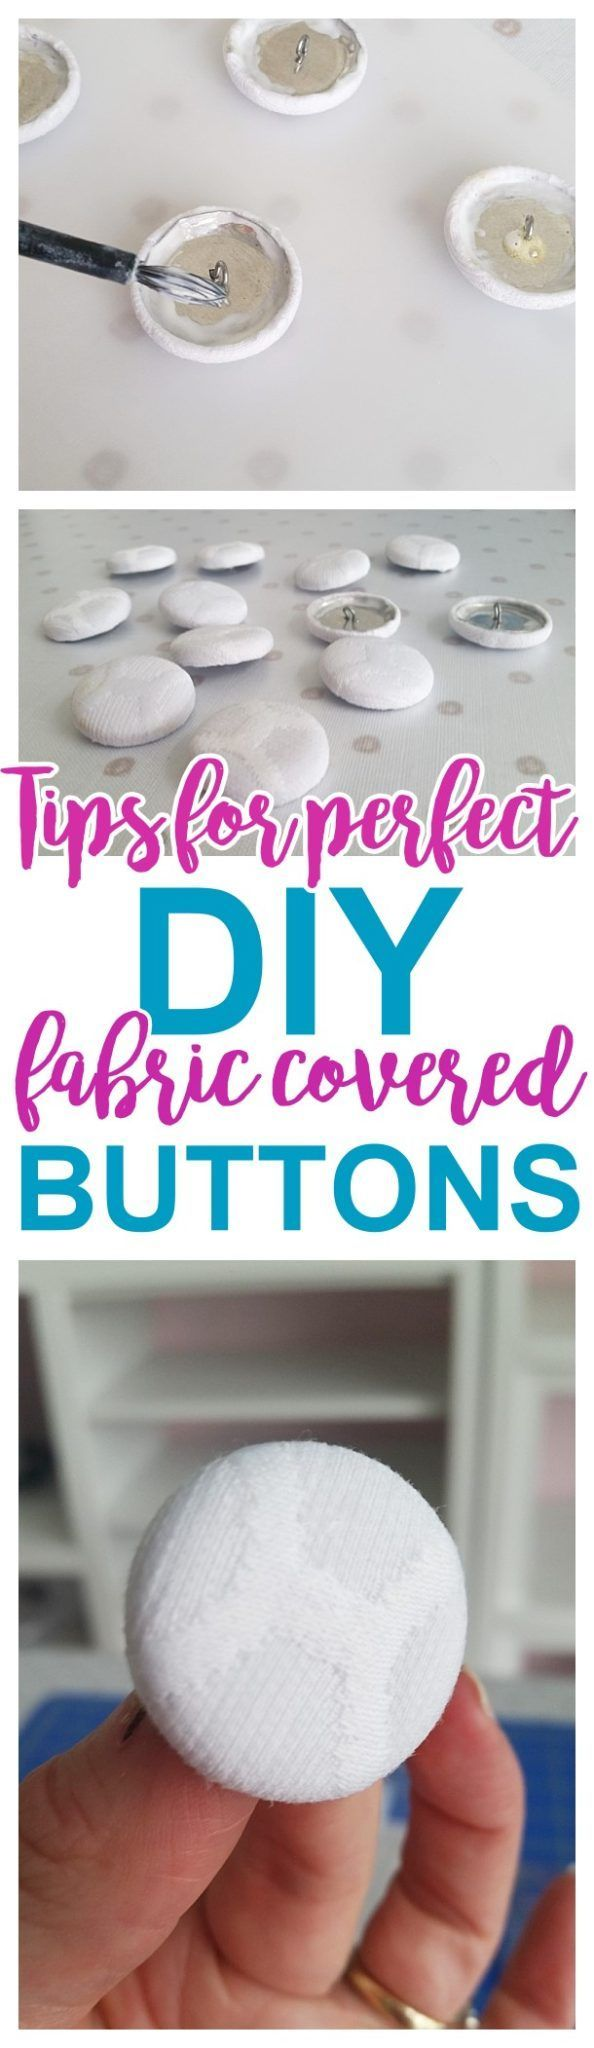 DIY Upholstery Fabric Covered Buttons - Tips, Tricks and Hacks to make them EASY and STURDY - Do it Yourself Step by Step Tutorial via Dreaming in DIY